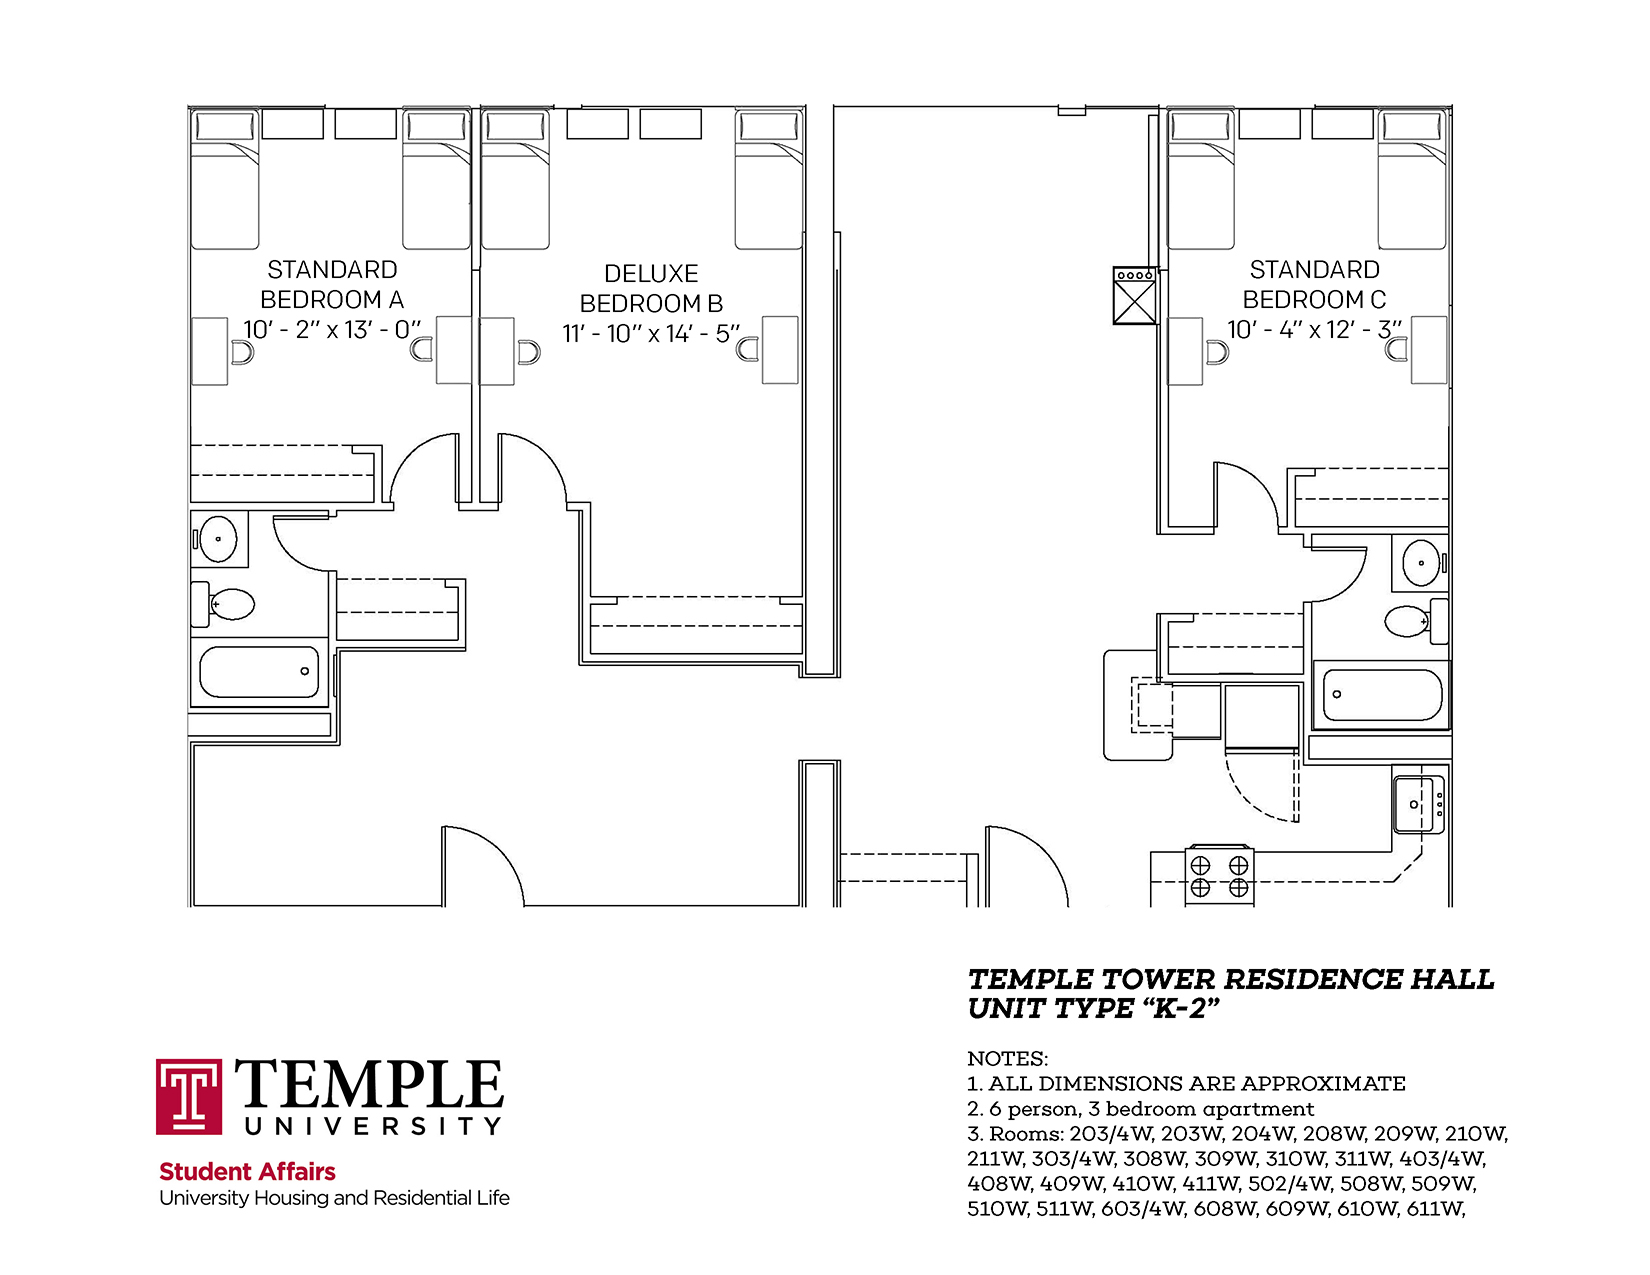 Temple towers university housing and residential life for Apartment building plans 6 units